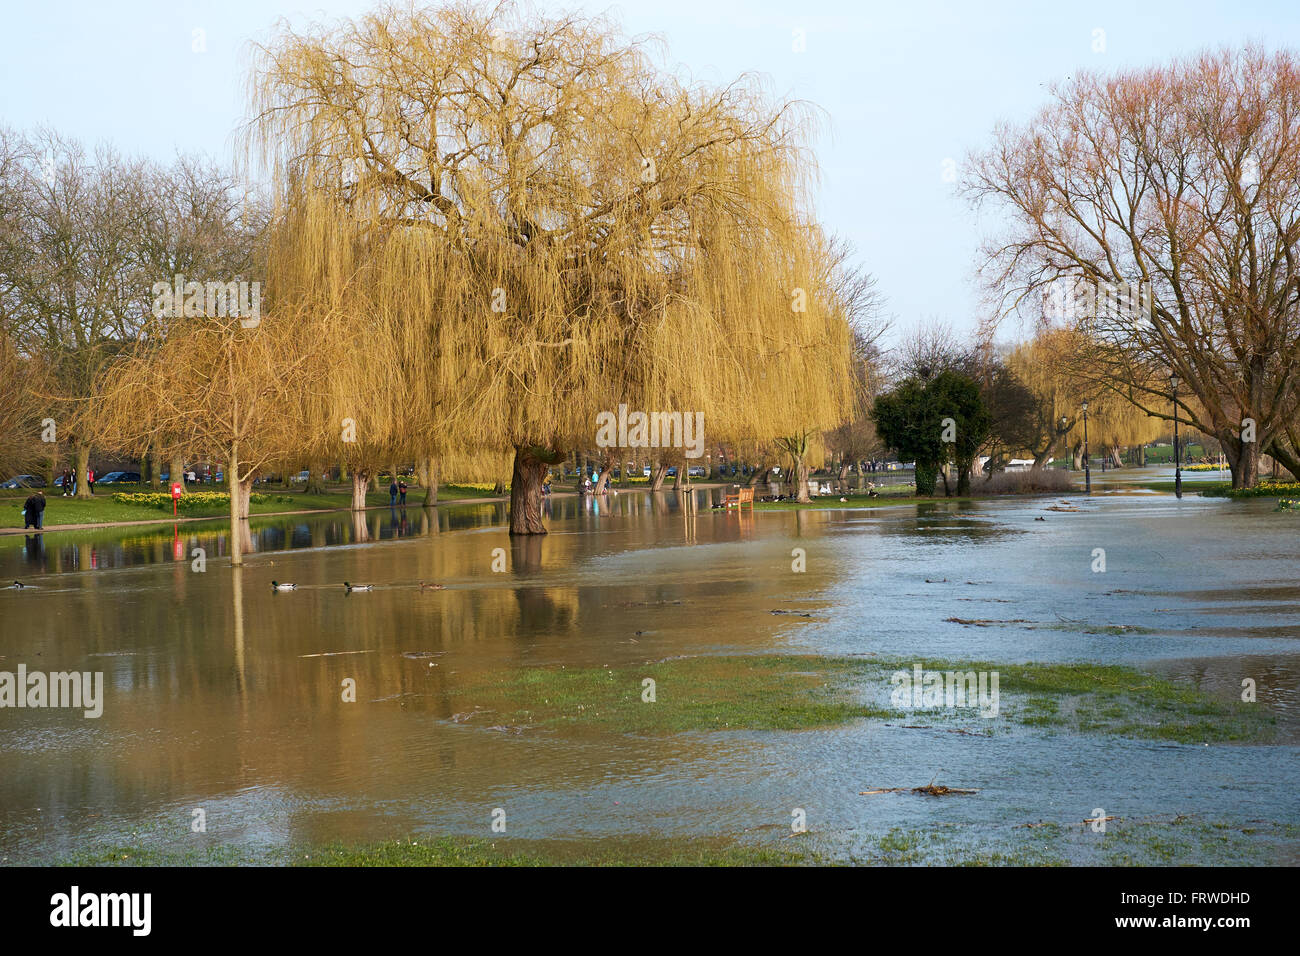 Floodwater flowing over the banks of the River Great Ouse Embankment, Bedford, Bedfordshire, United Kingdom. Stock Photo